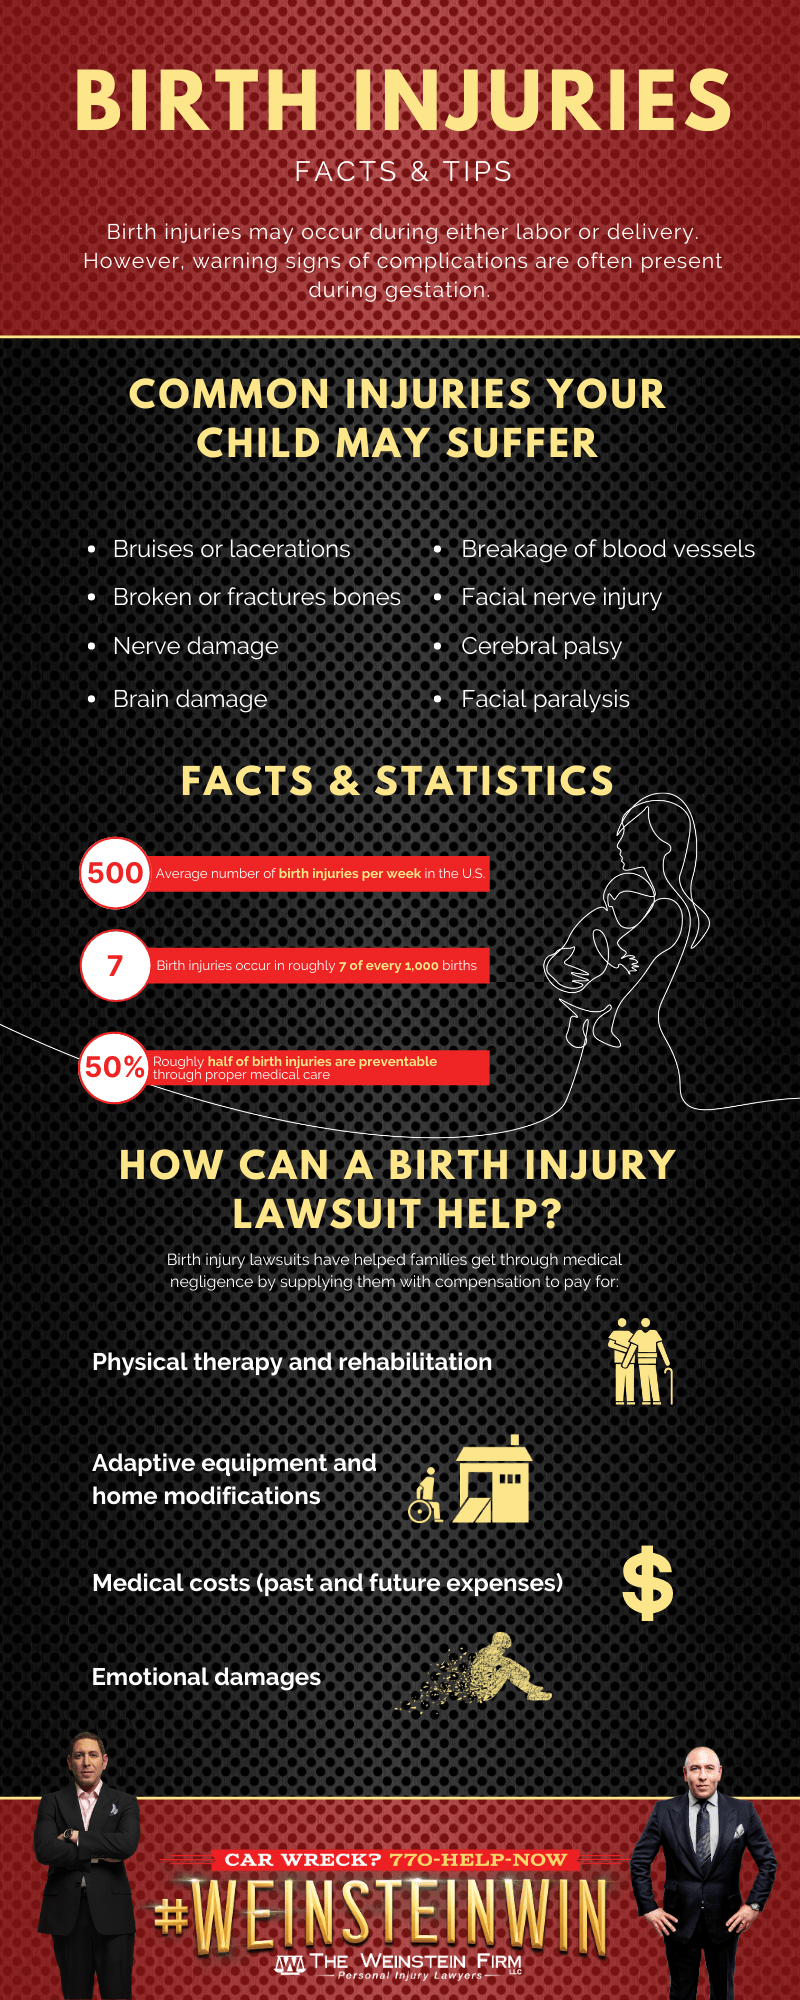 Birth Injury Facts and Tips